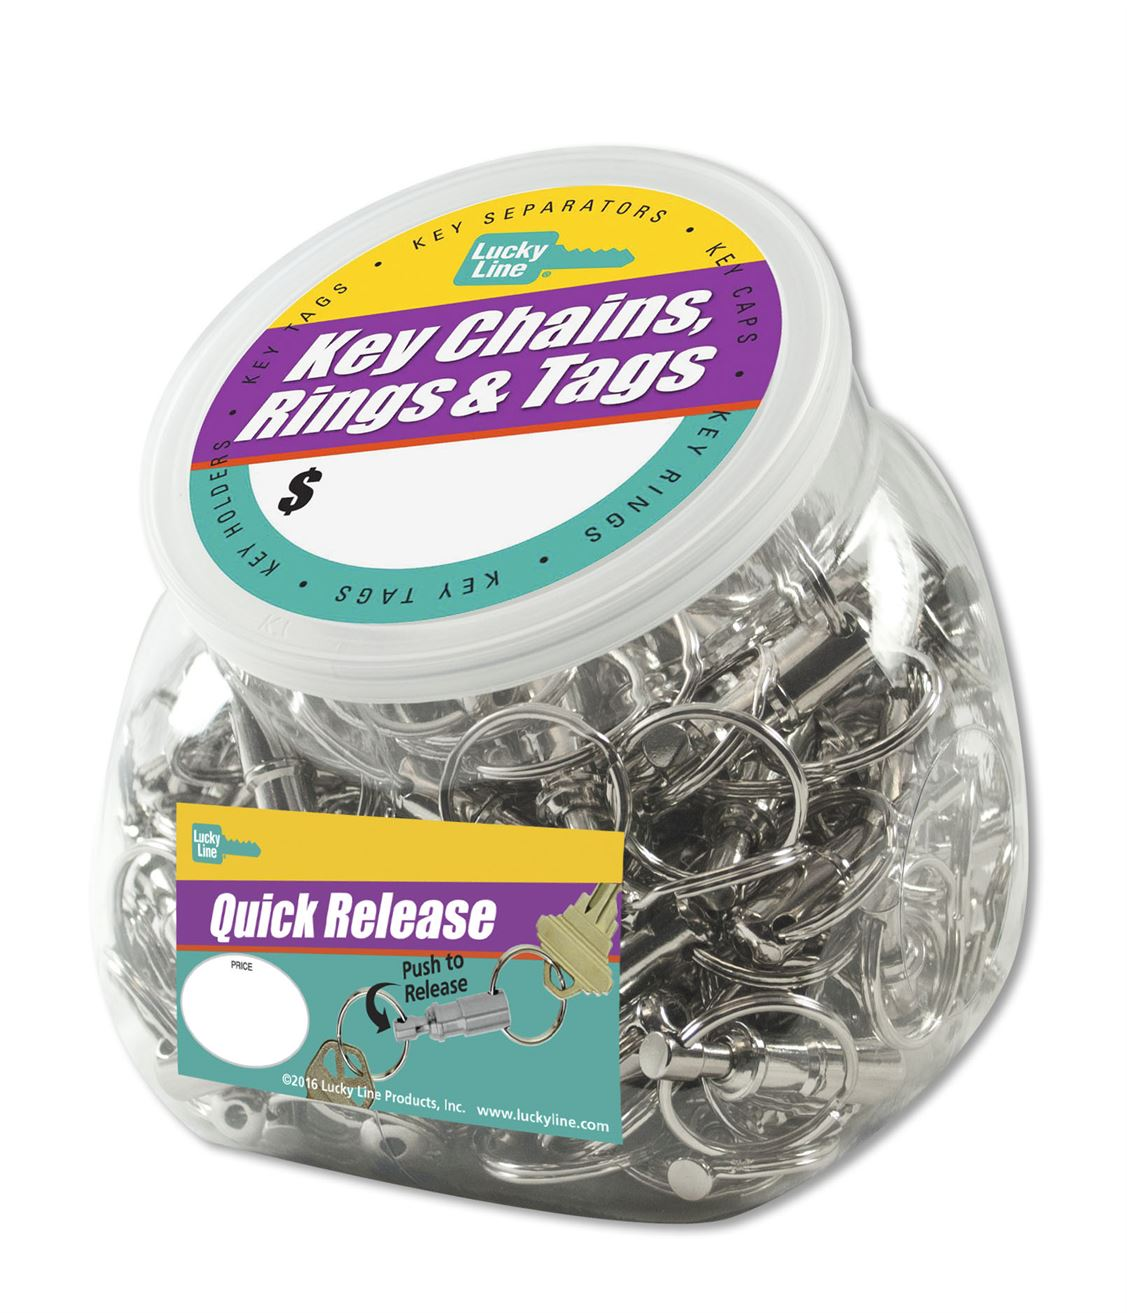 QUICK RELEASE KEY RING 75/JAR